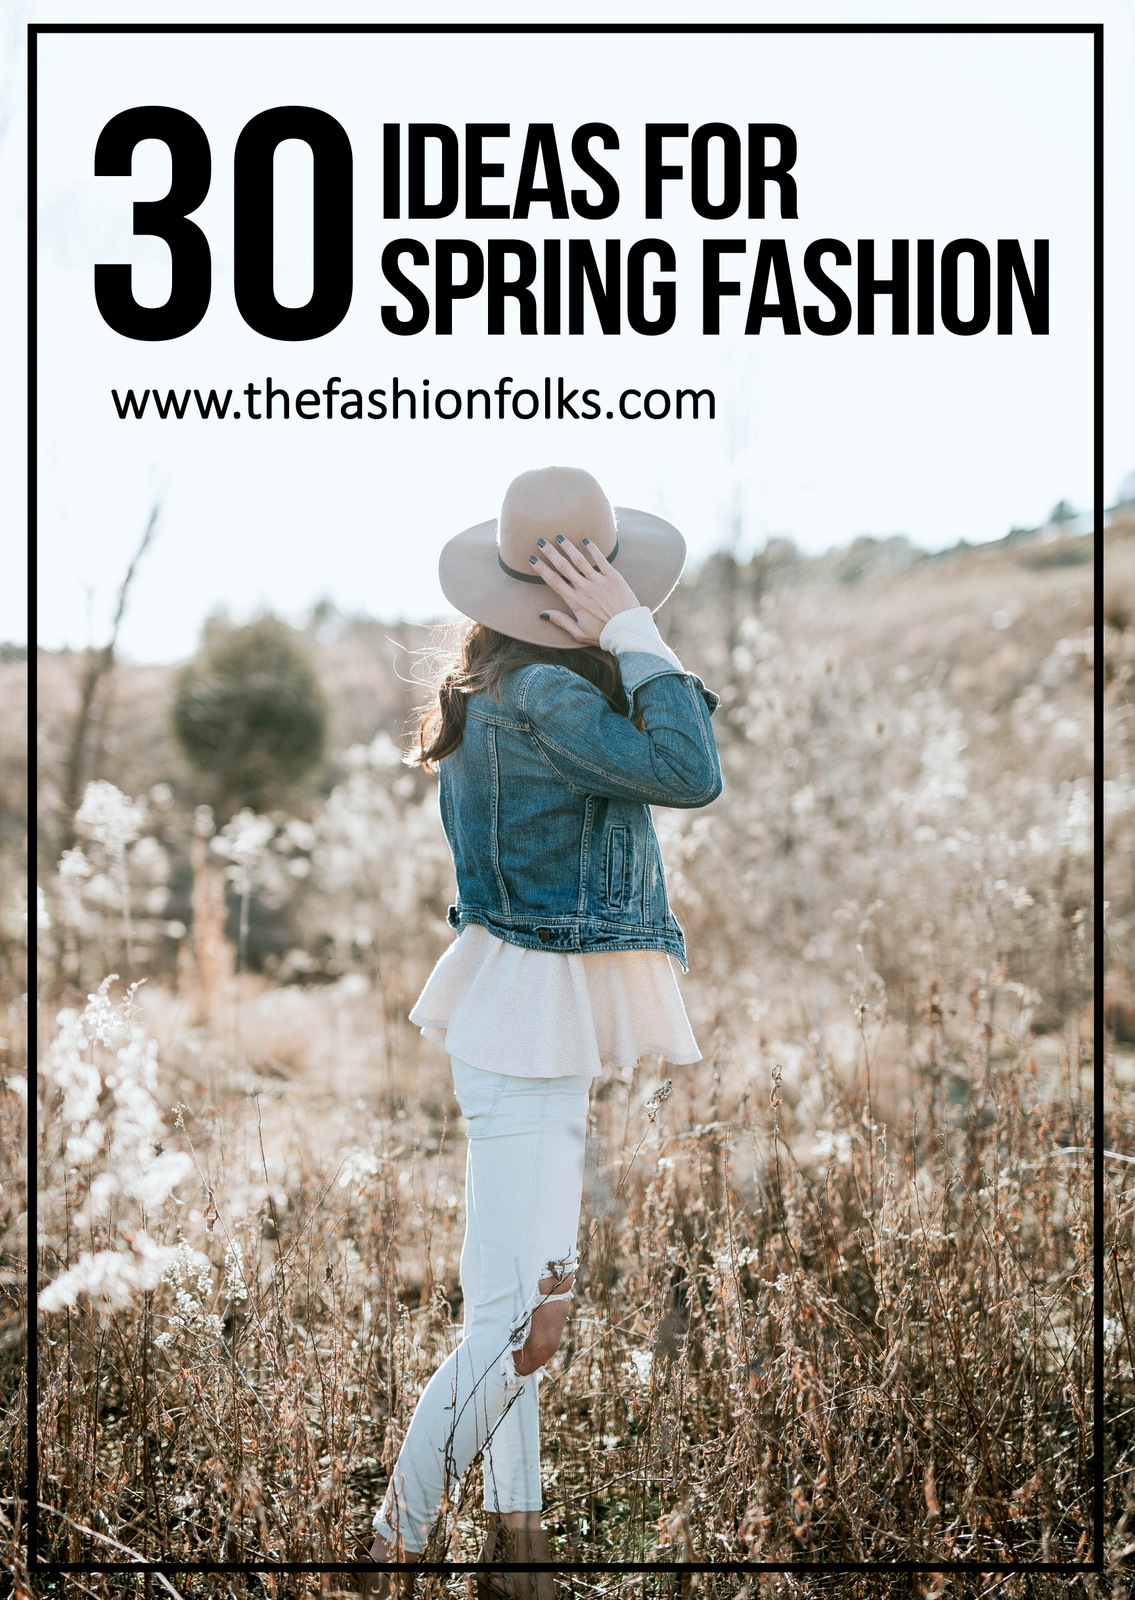 30 Ideas For Spring Fashion 2017 + Outfit inspiration, street style, styling tips, spring clothes | The Fashion Folks